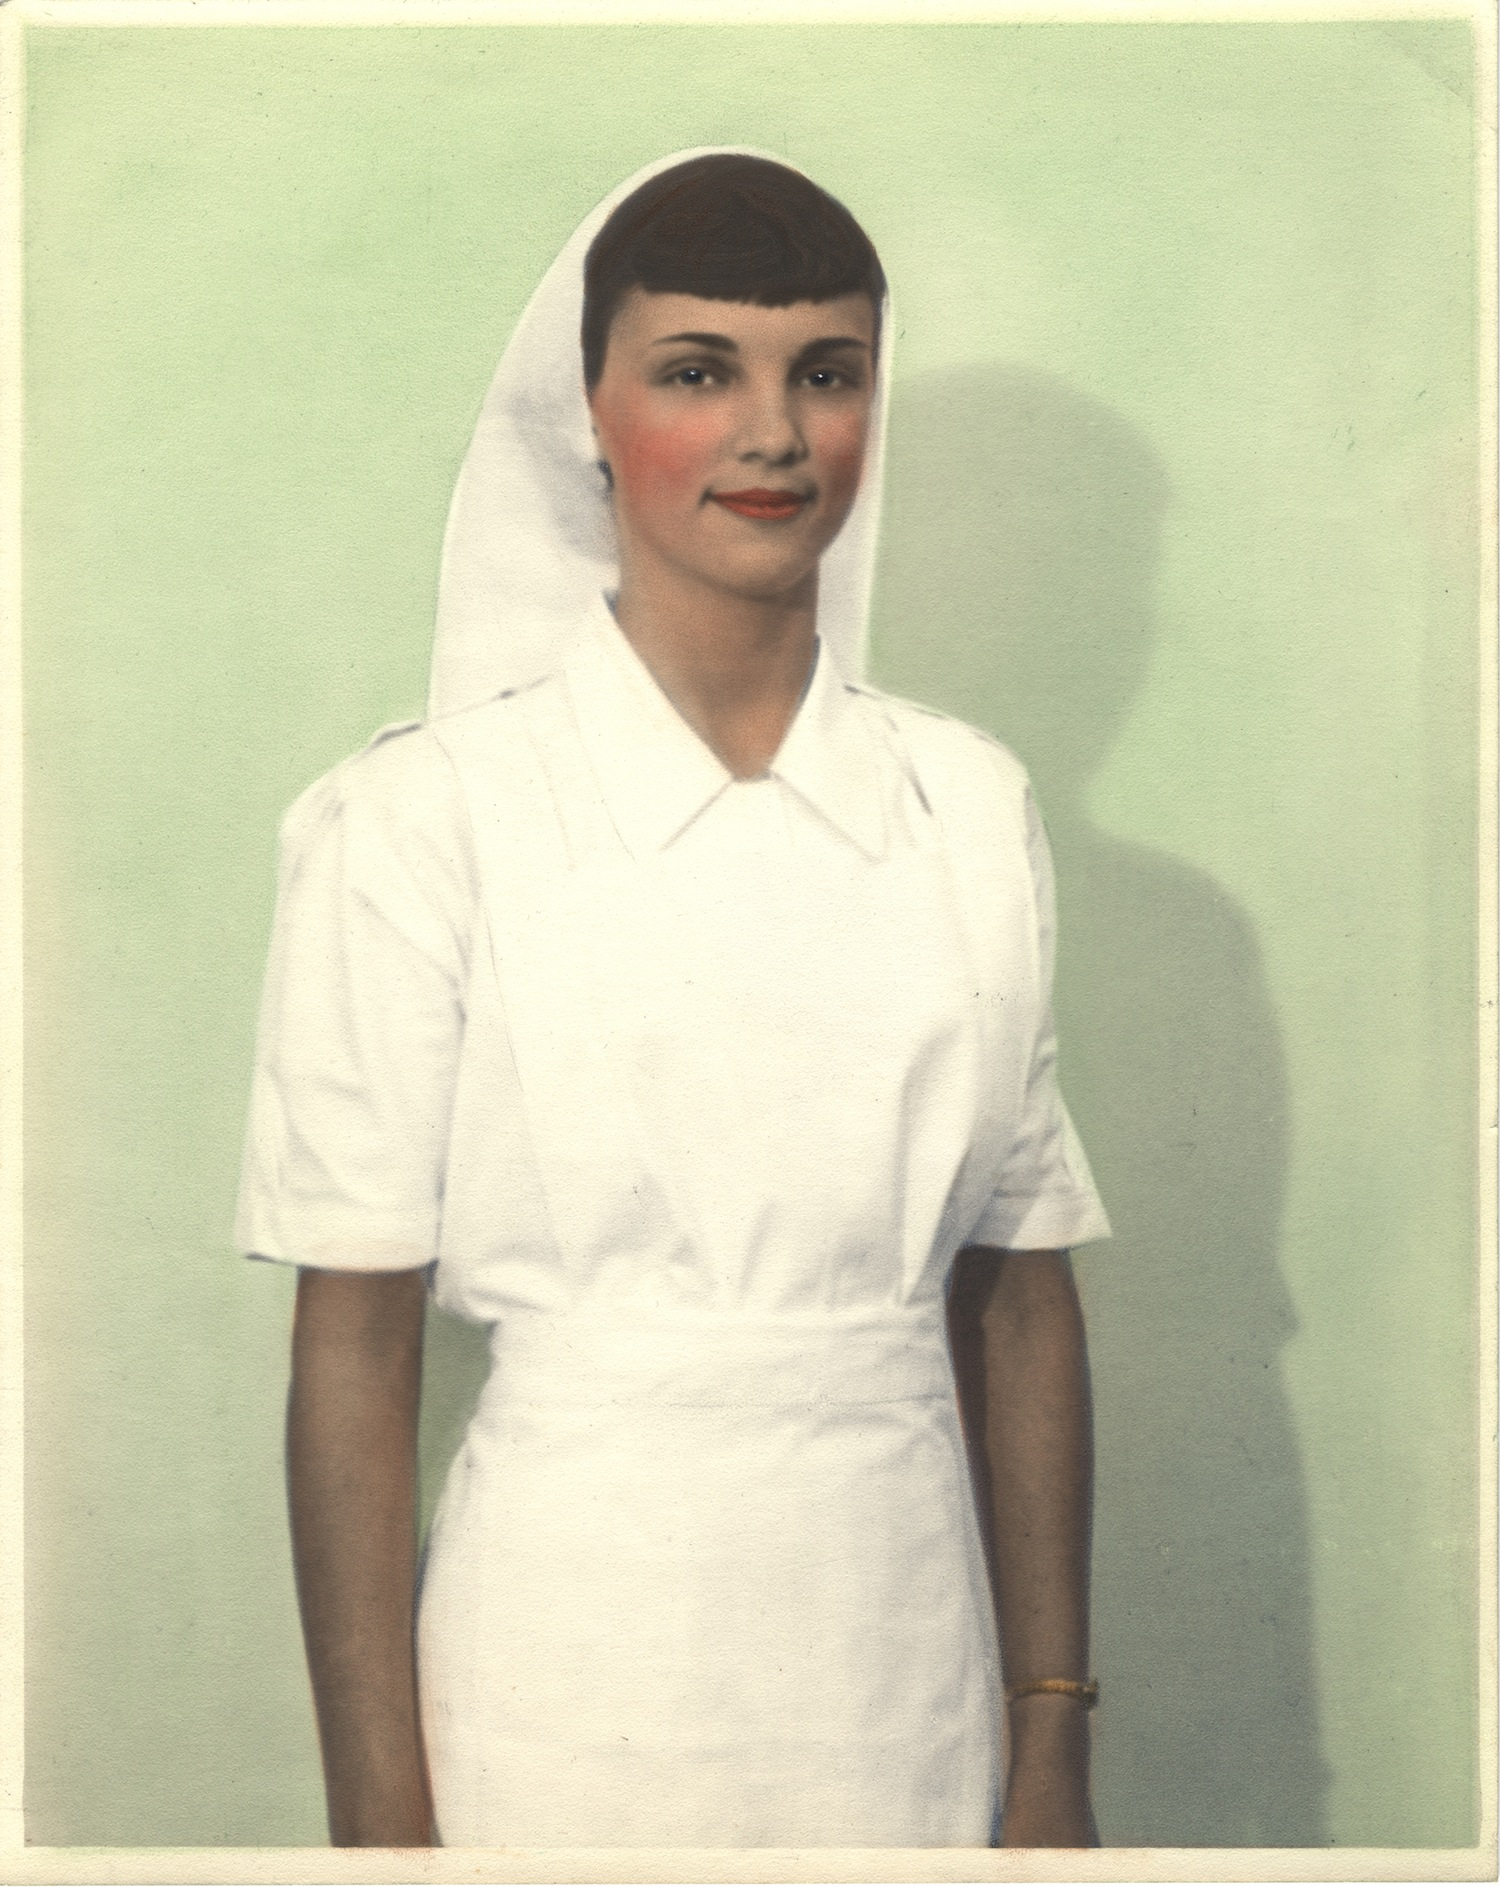 Nurse wearing uniform from Sudan